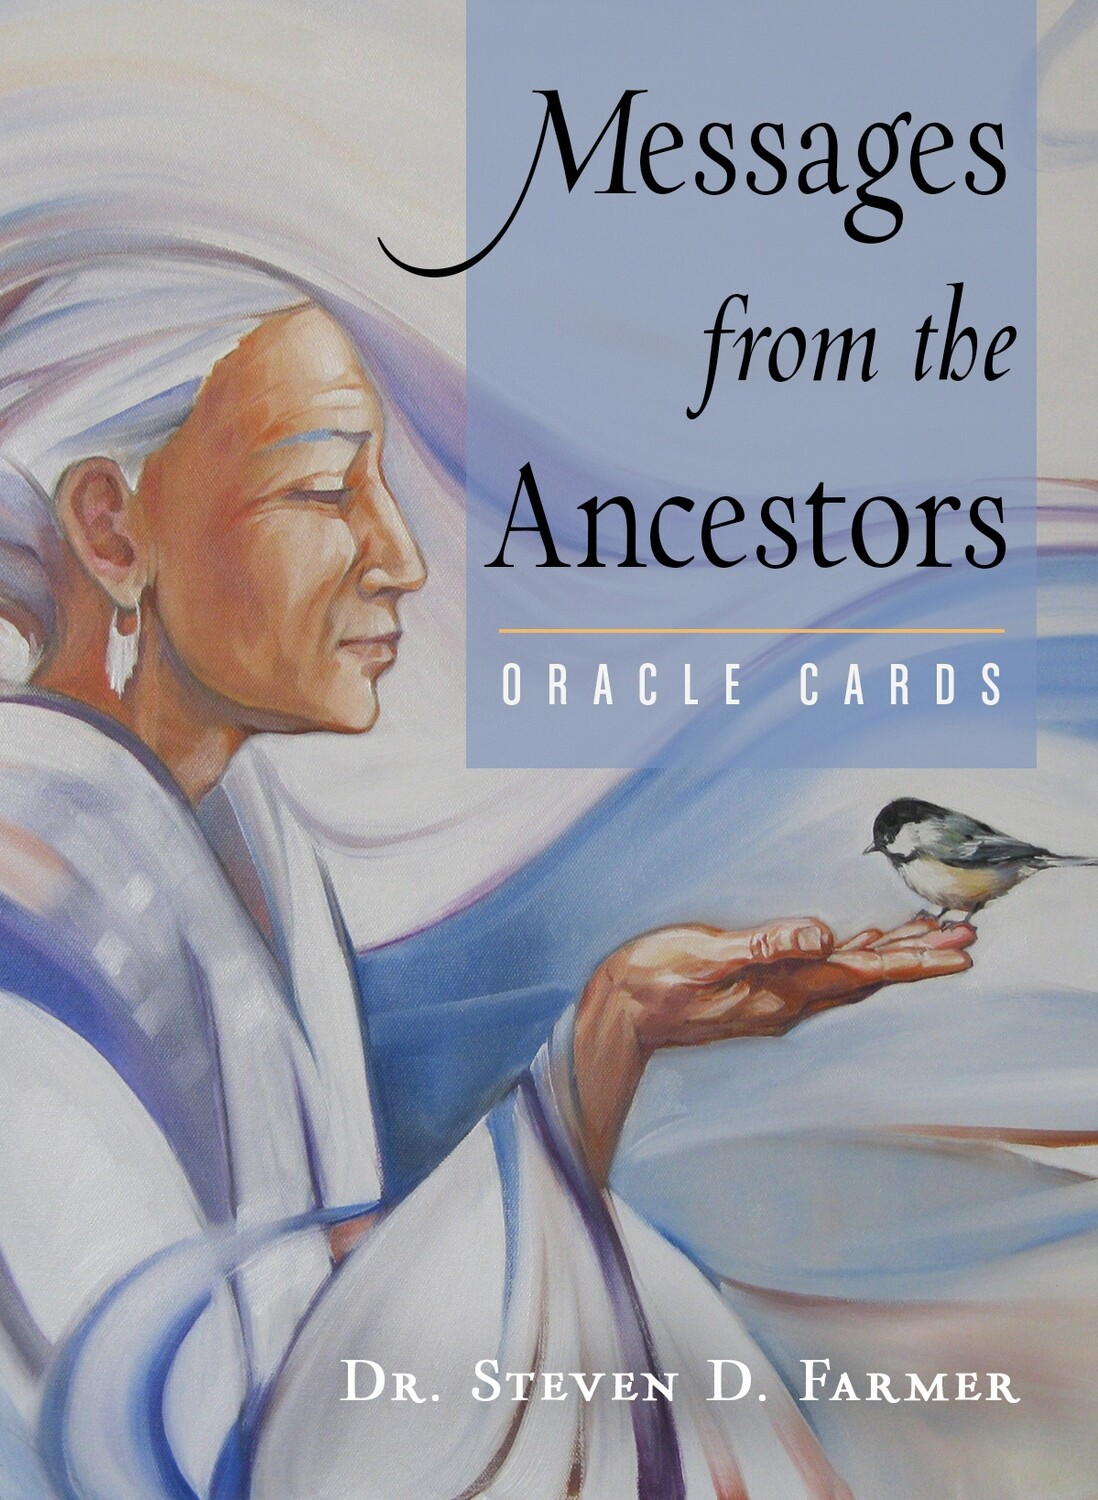 Messages from the Ancestors Oracle Cards